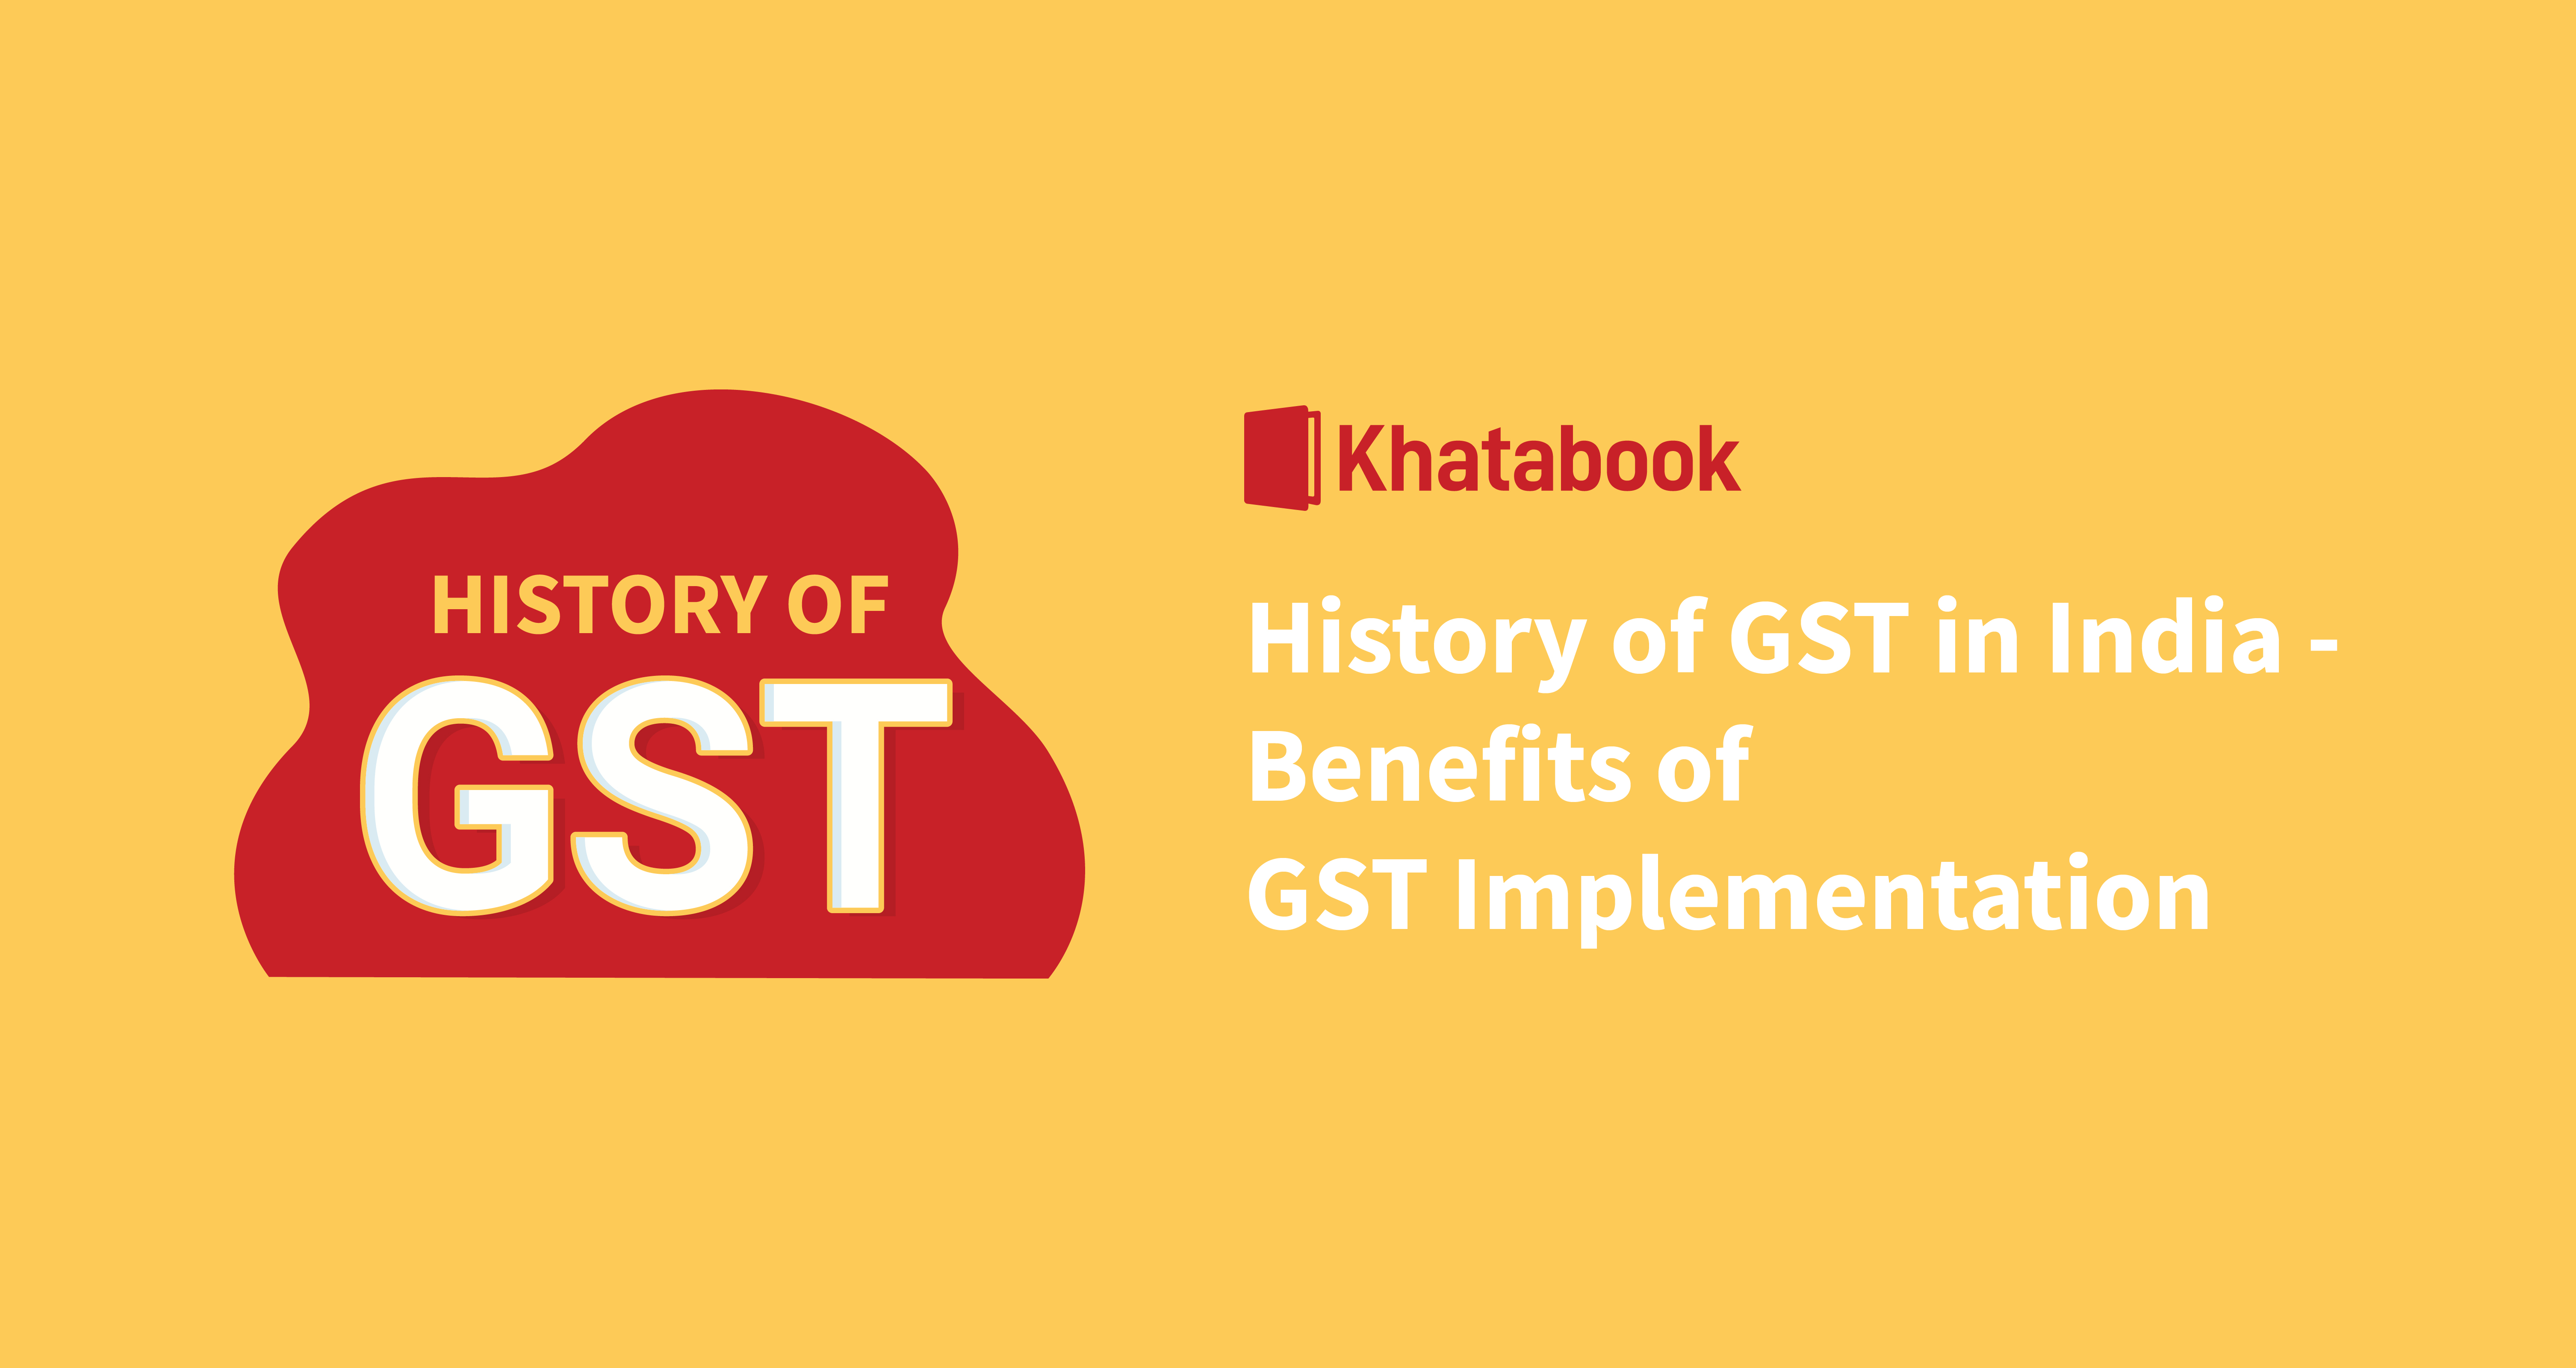 History of GST in India - Benefits of GST Implementation